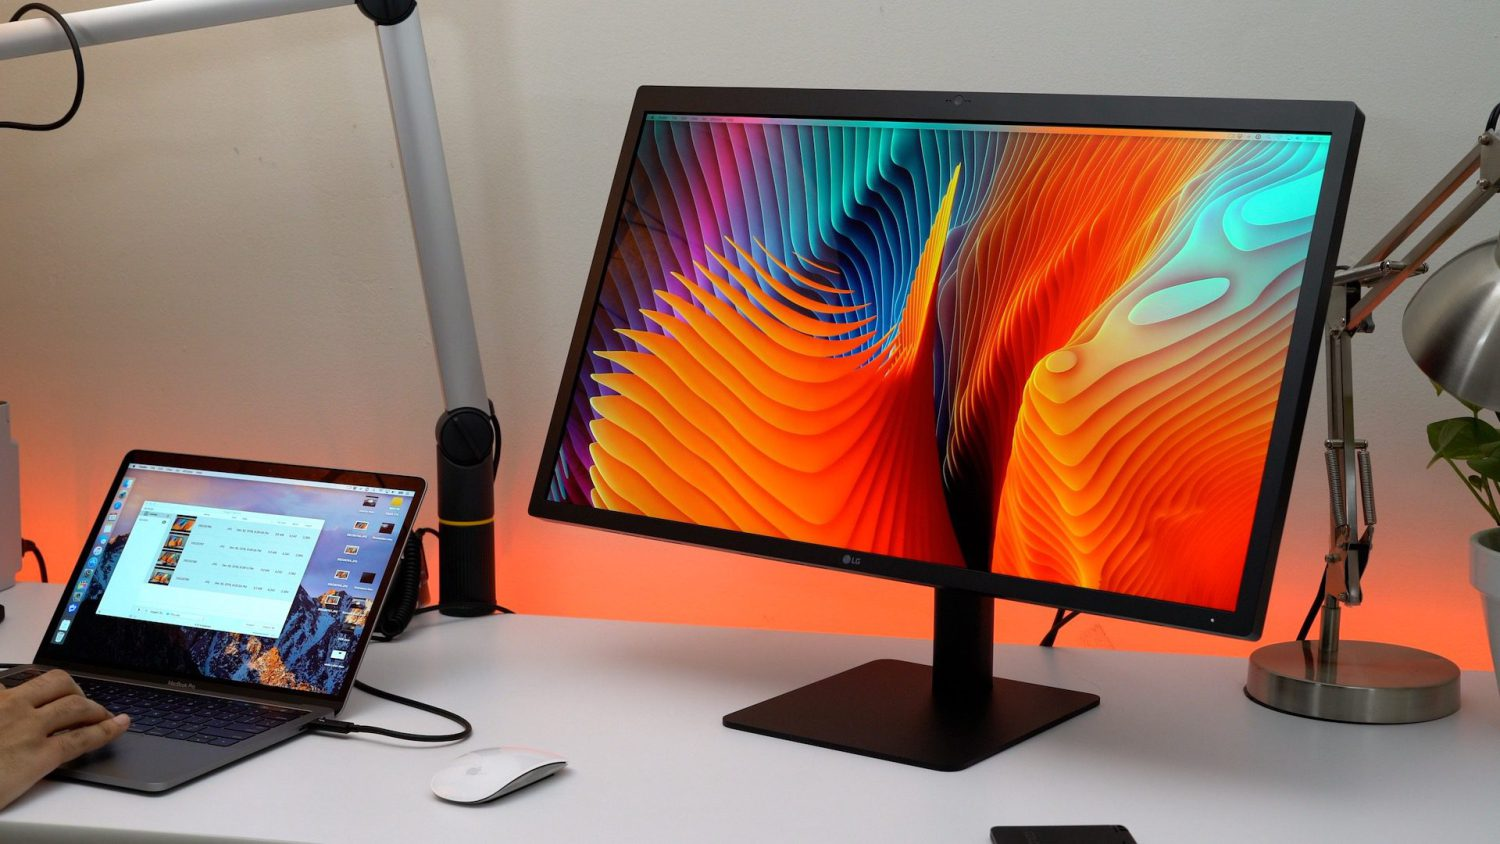 LG UltraFine 5K no longer available from Apple - 9to5Mac